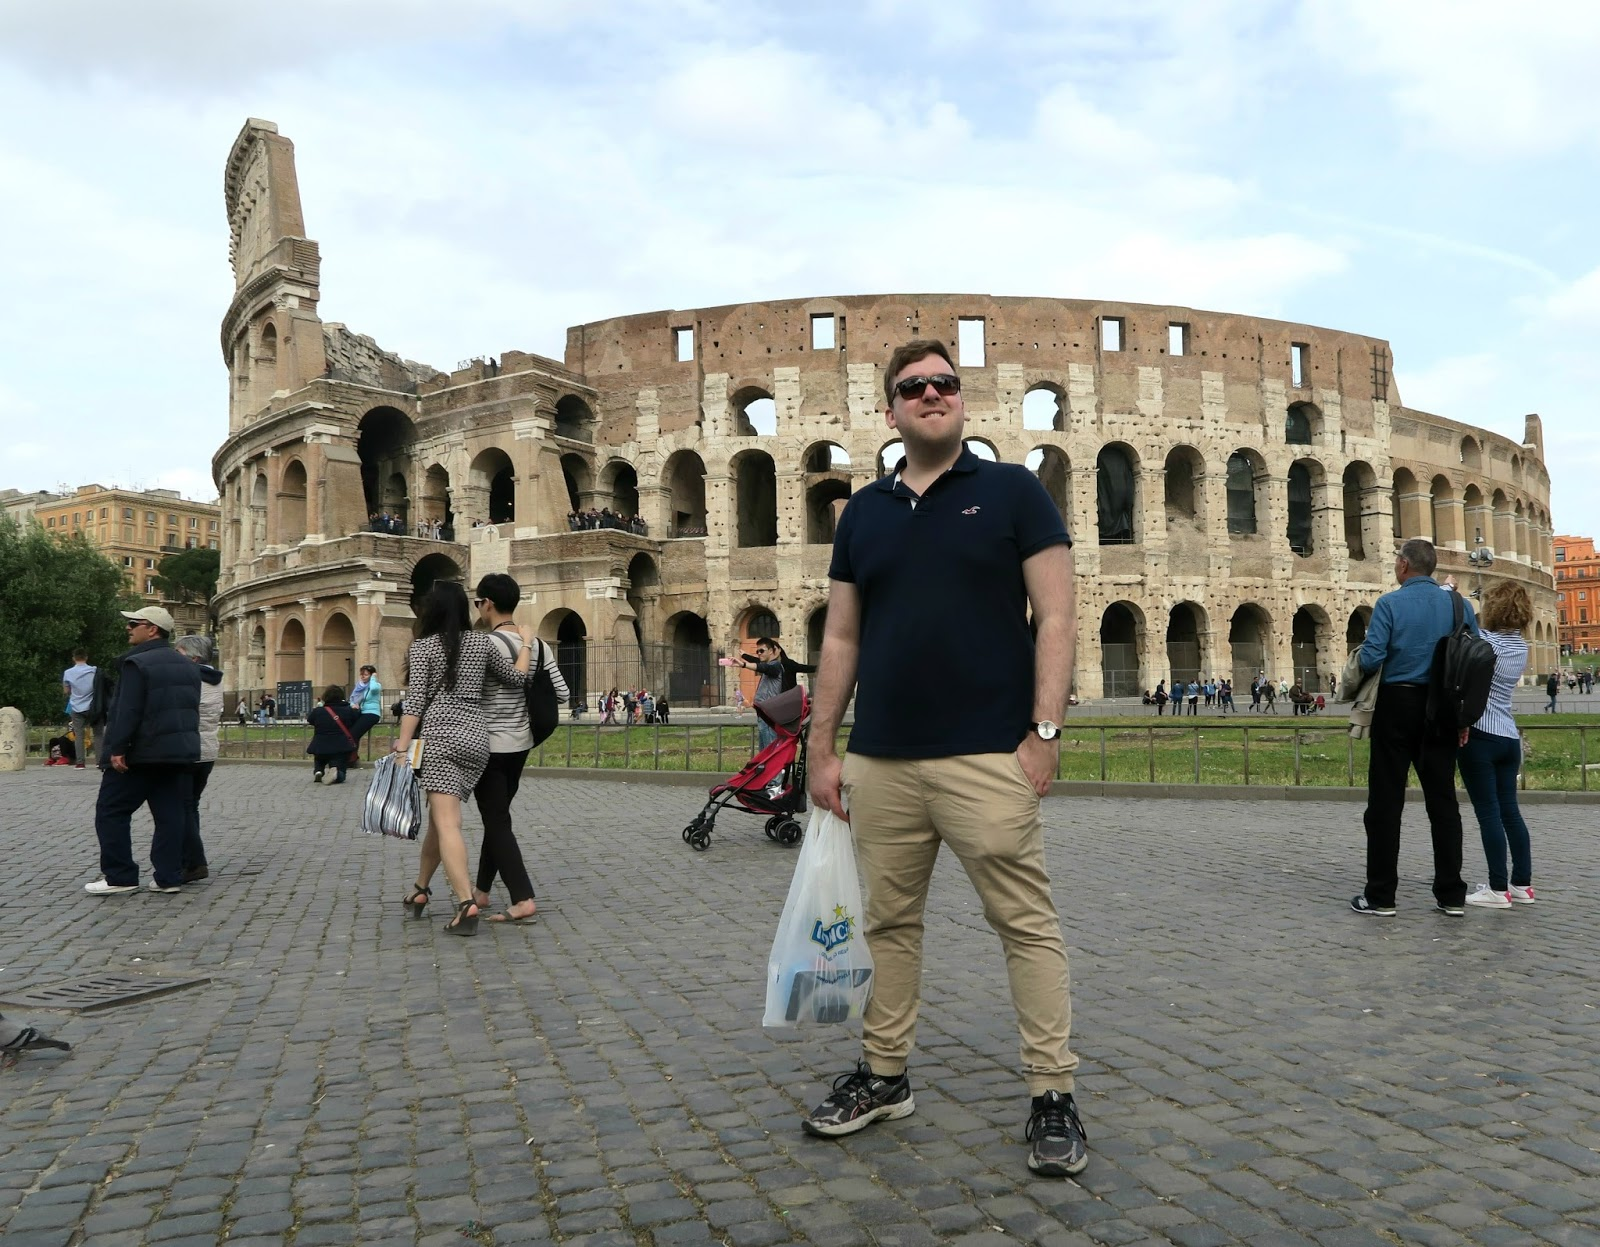 Outside the colloseum